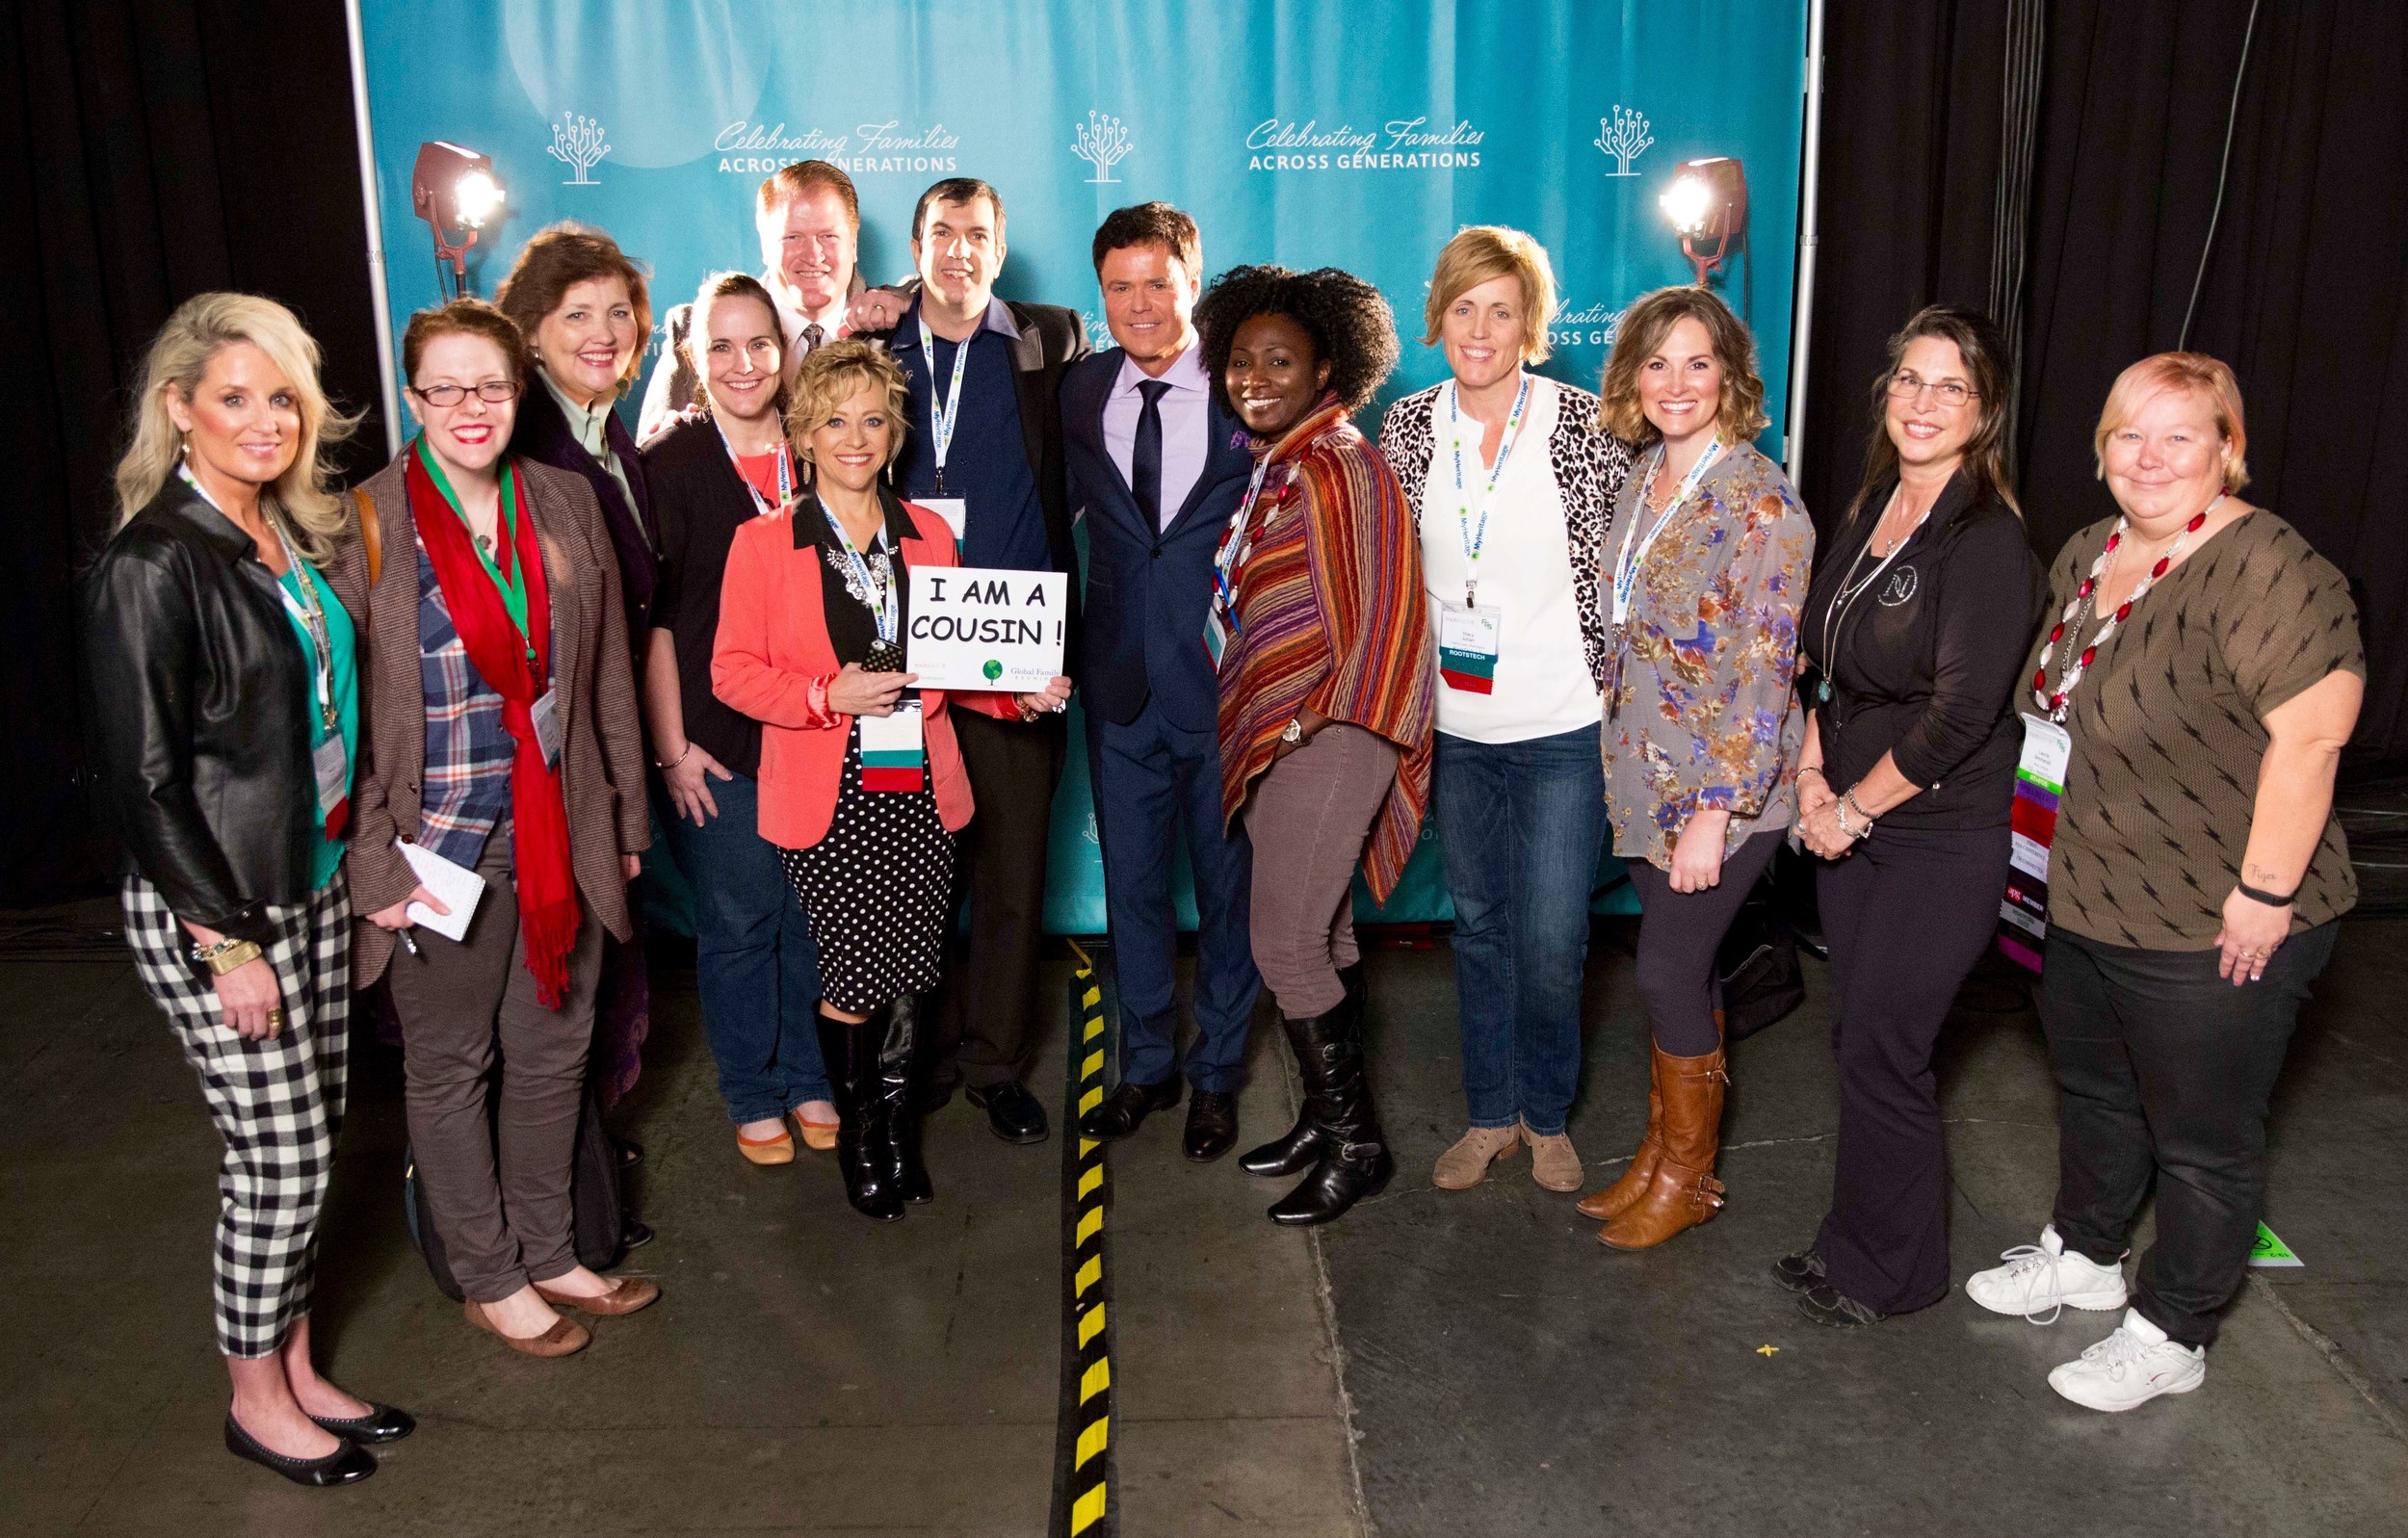 Photo taken last year, following Donny Osmond's keynote address. I bet you recognize a few other faces in this photo too. AJ Jacobs is there and so is Rhonna Farrer and Becky Higgins! Good times!